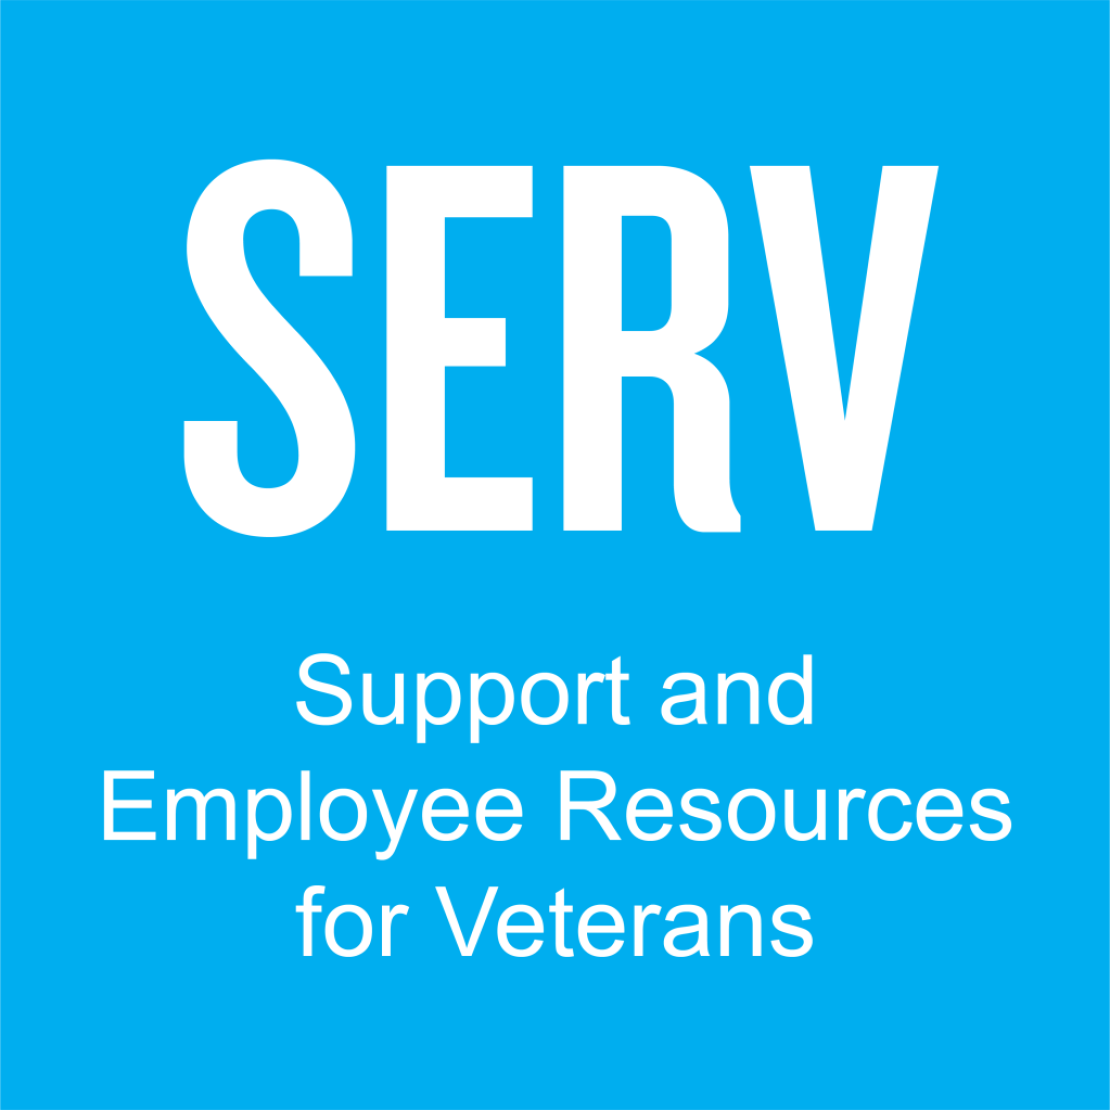 Support and Employee Resources for Veterans